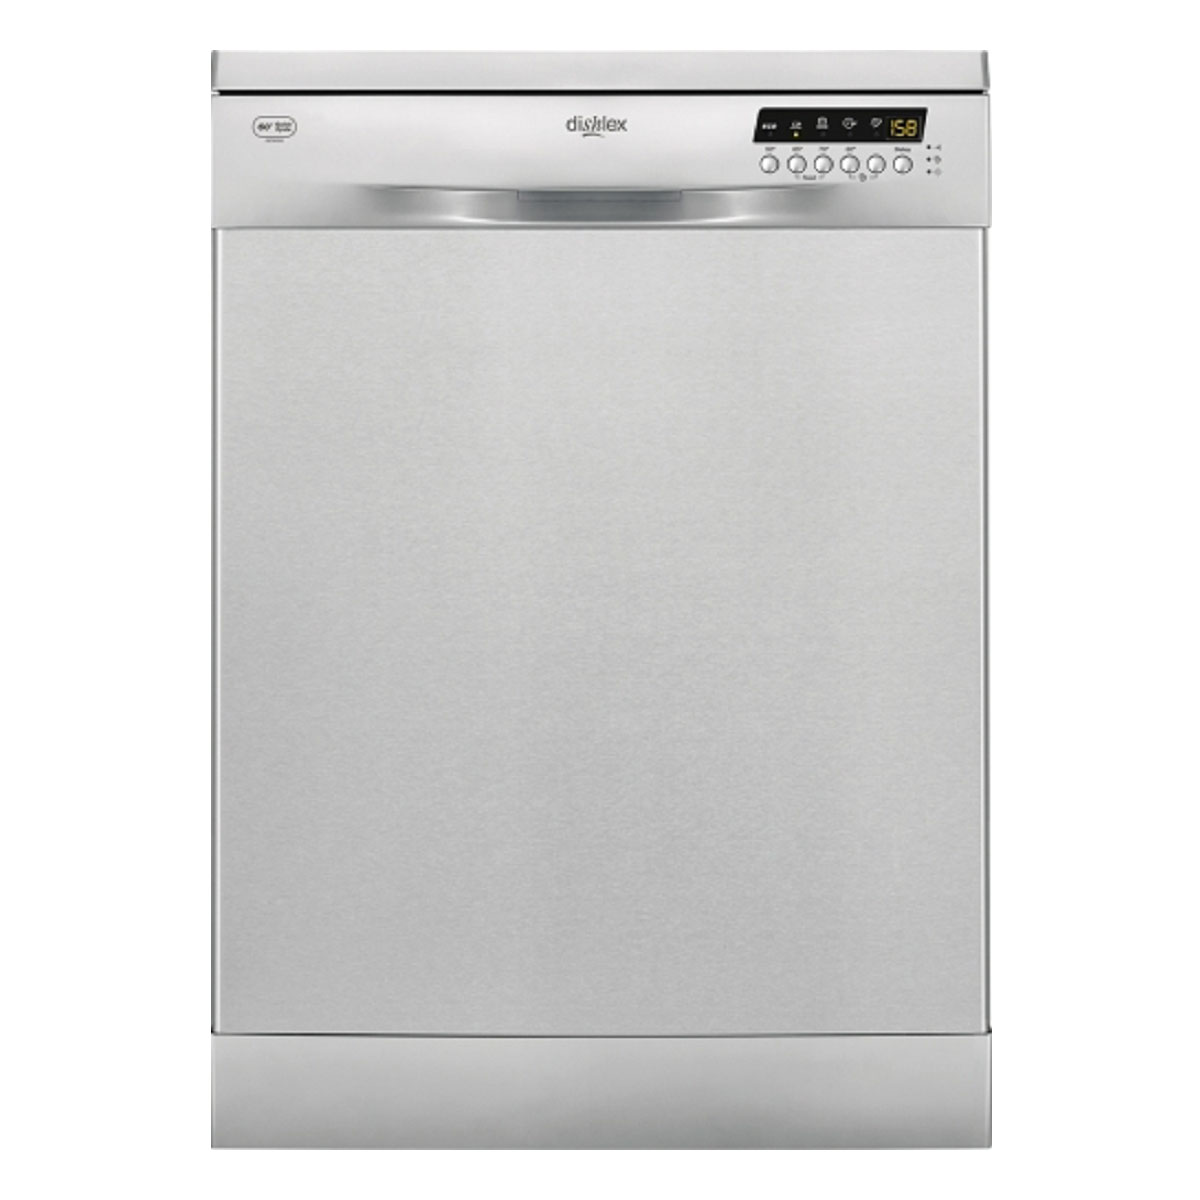 Dishlex DSF6206X Freestanding Dishwasher